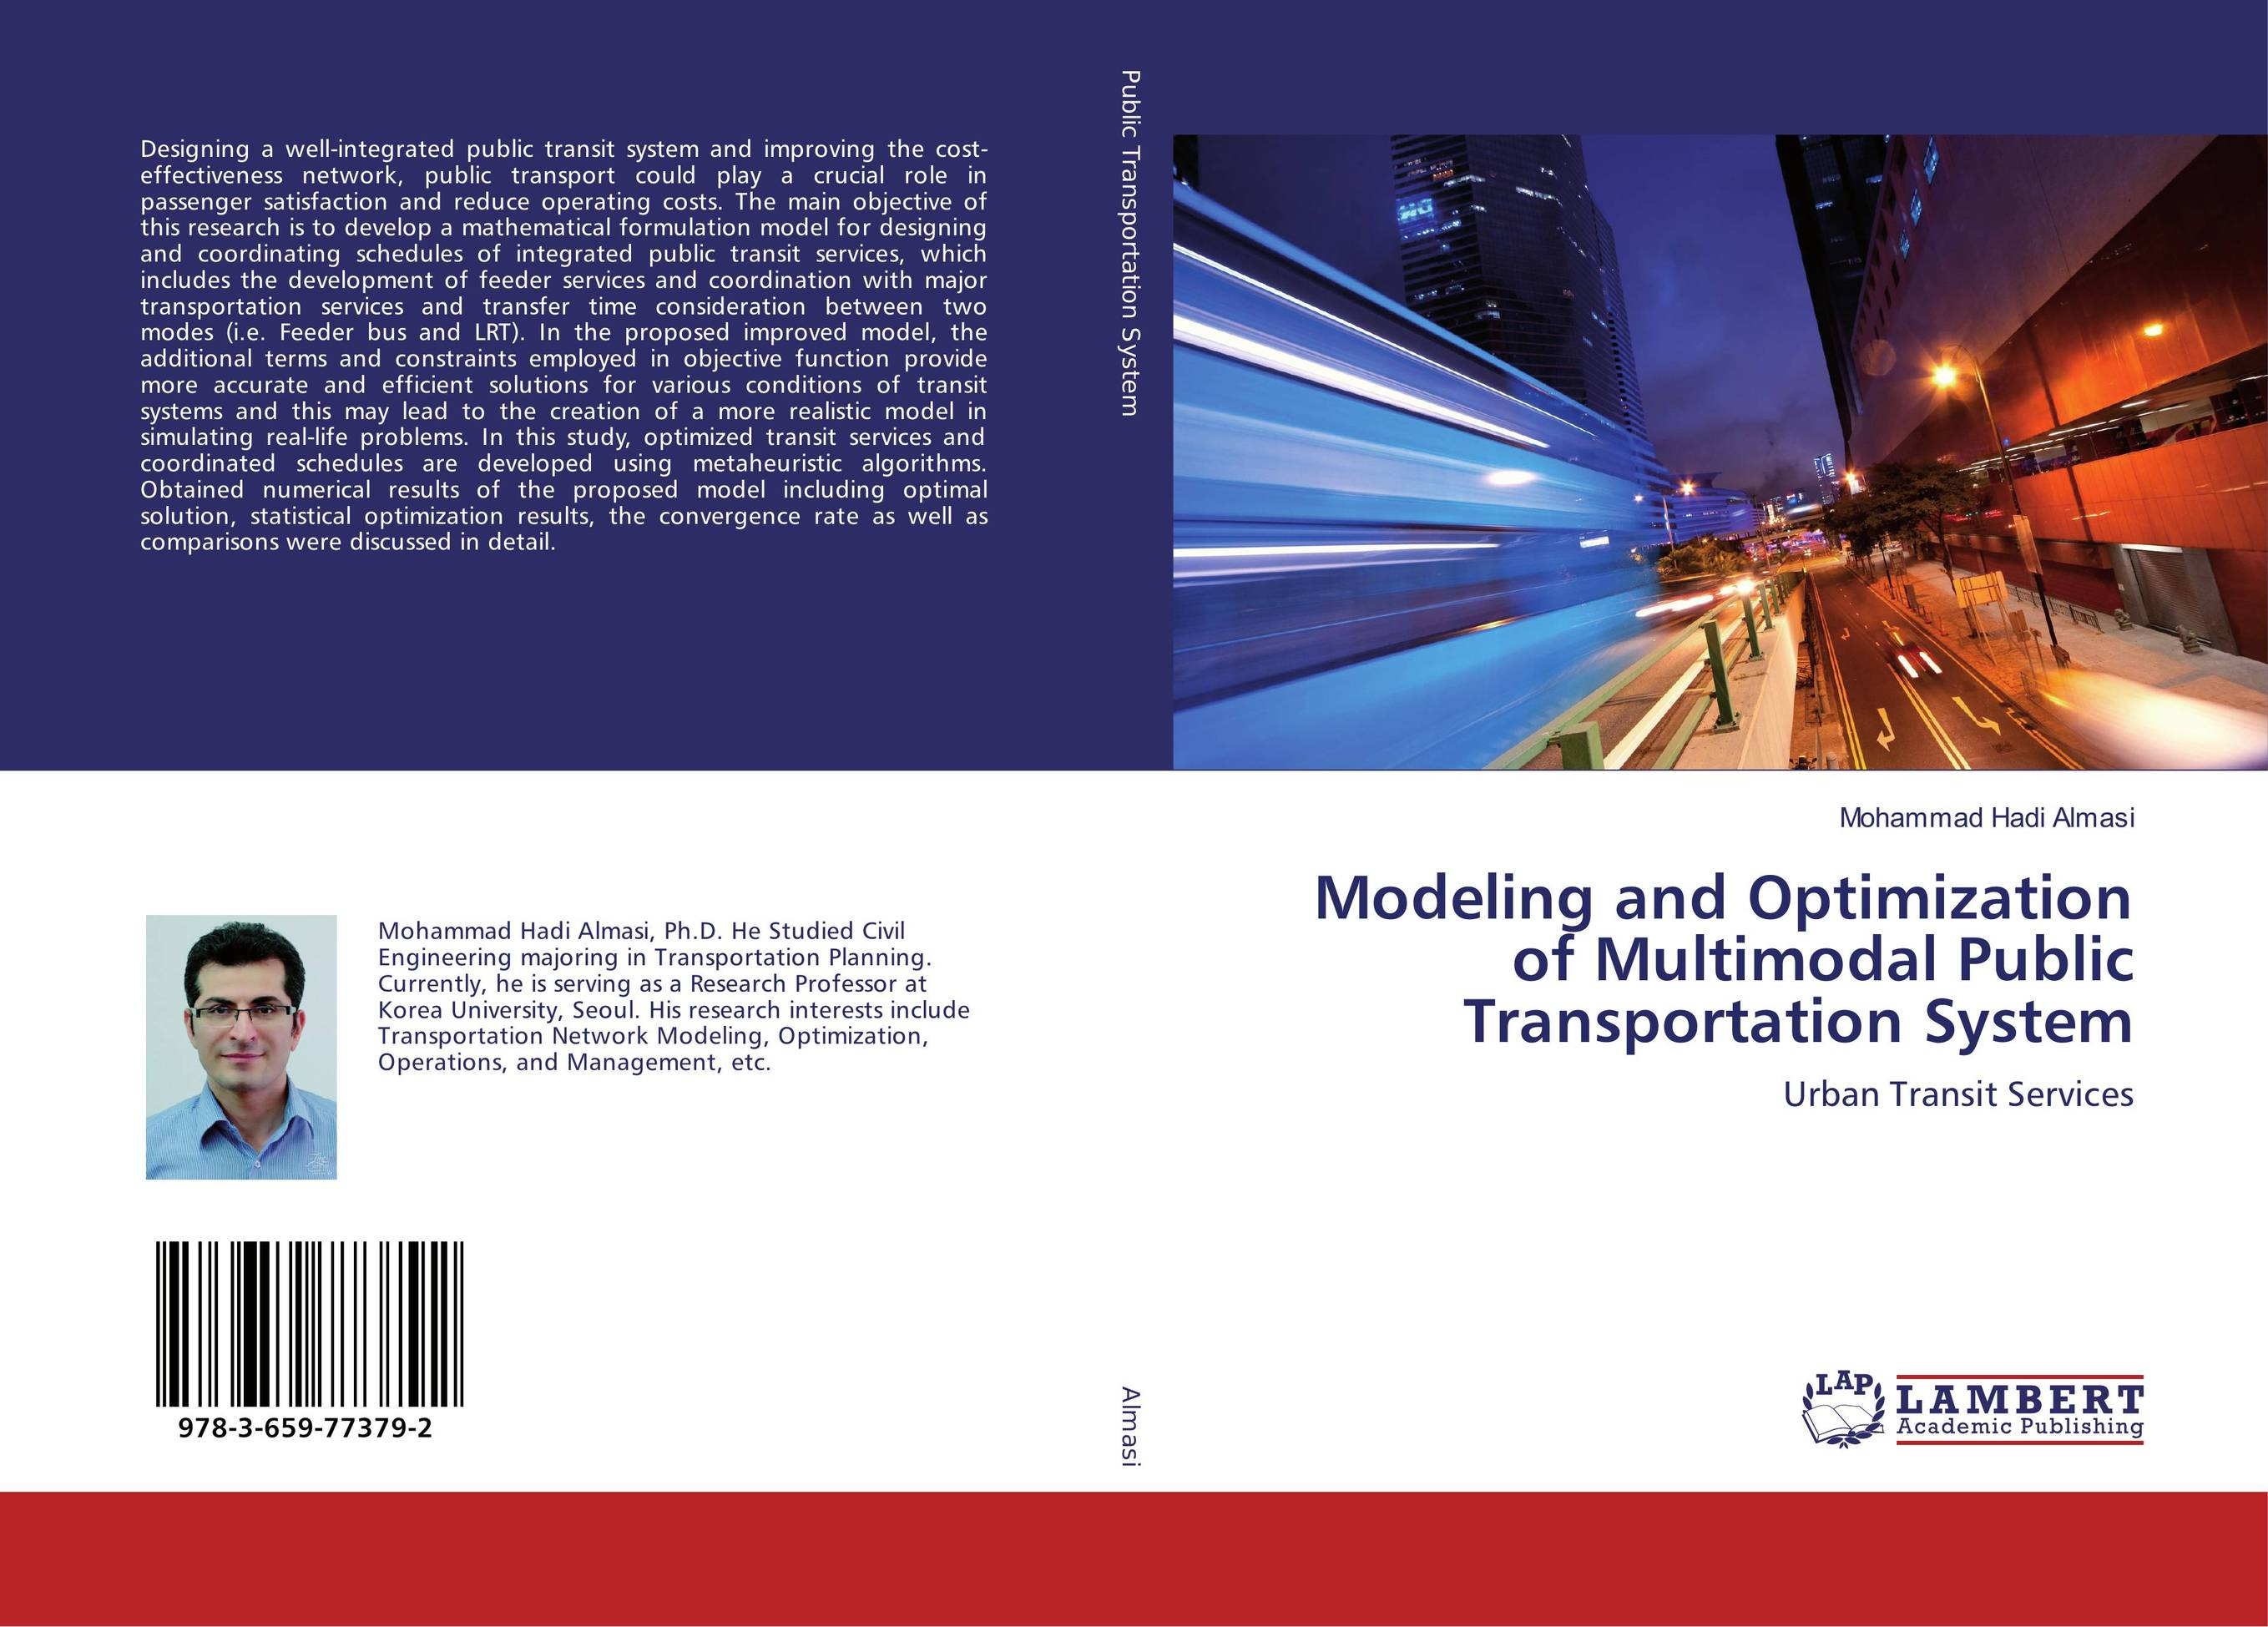 Modeling and Optimization of Multimodal Public Transportation System modeling rejection immunity a proposed model